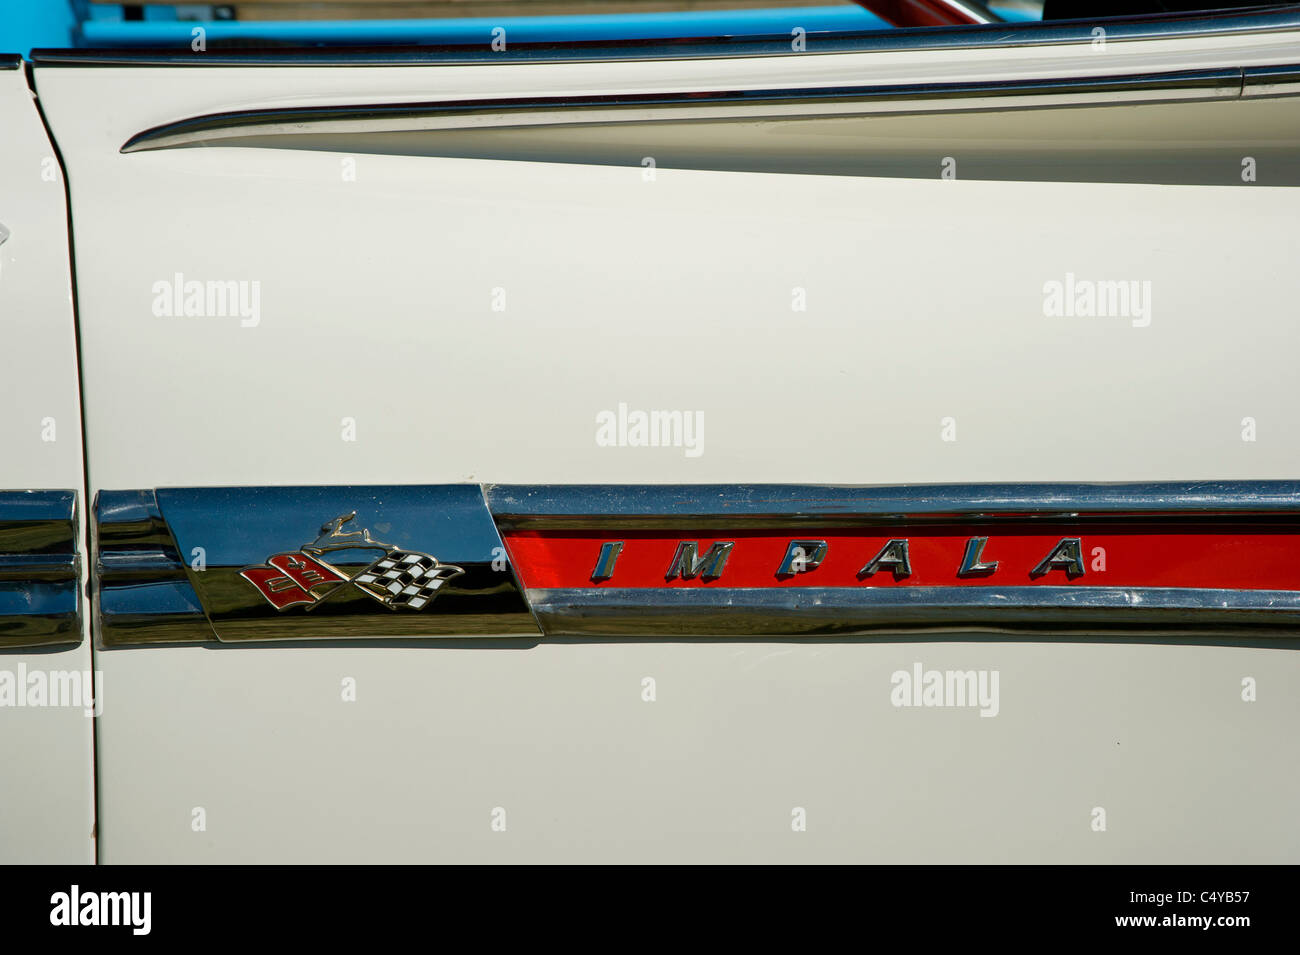 Rear wing of 1959 Chevrolet Impala with badge - Stock Image